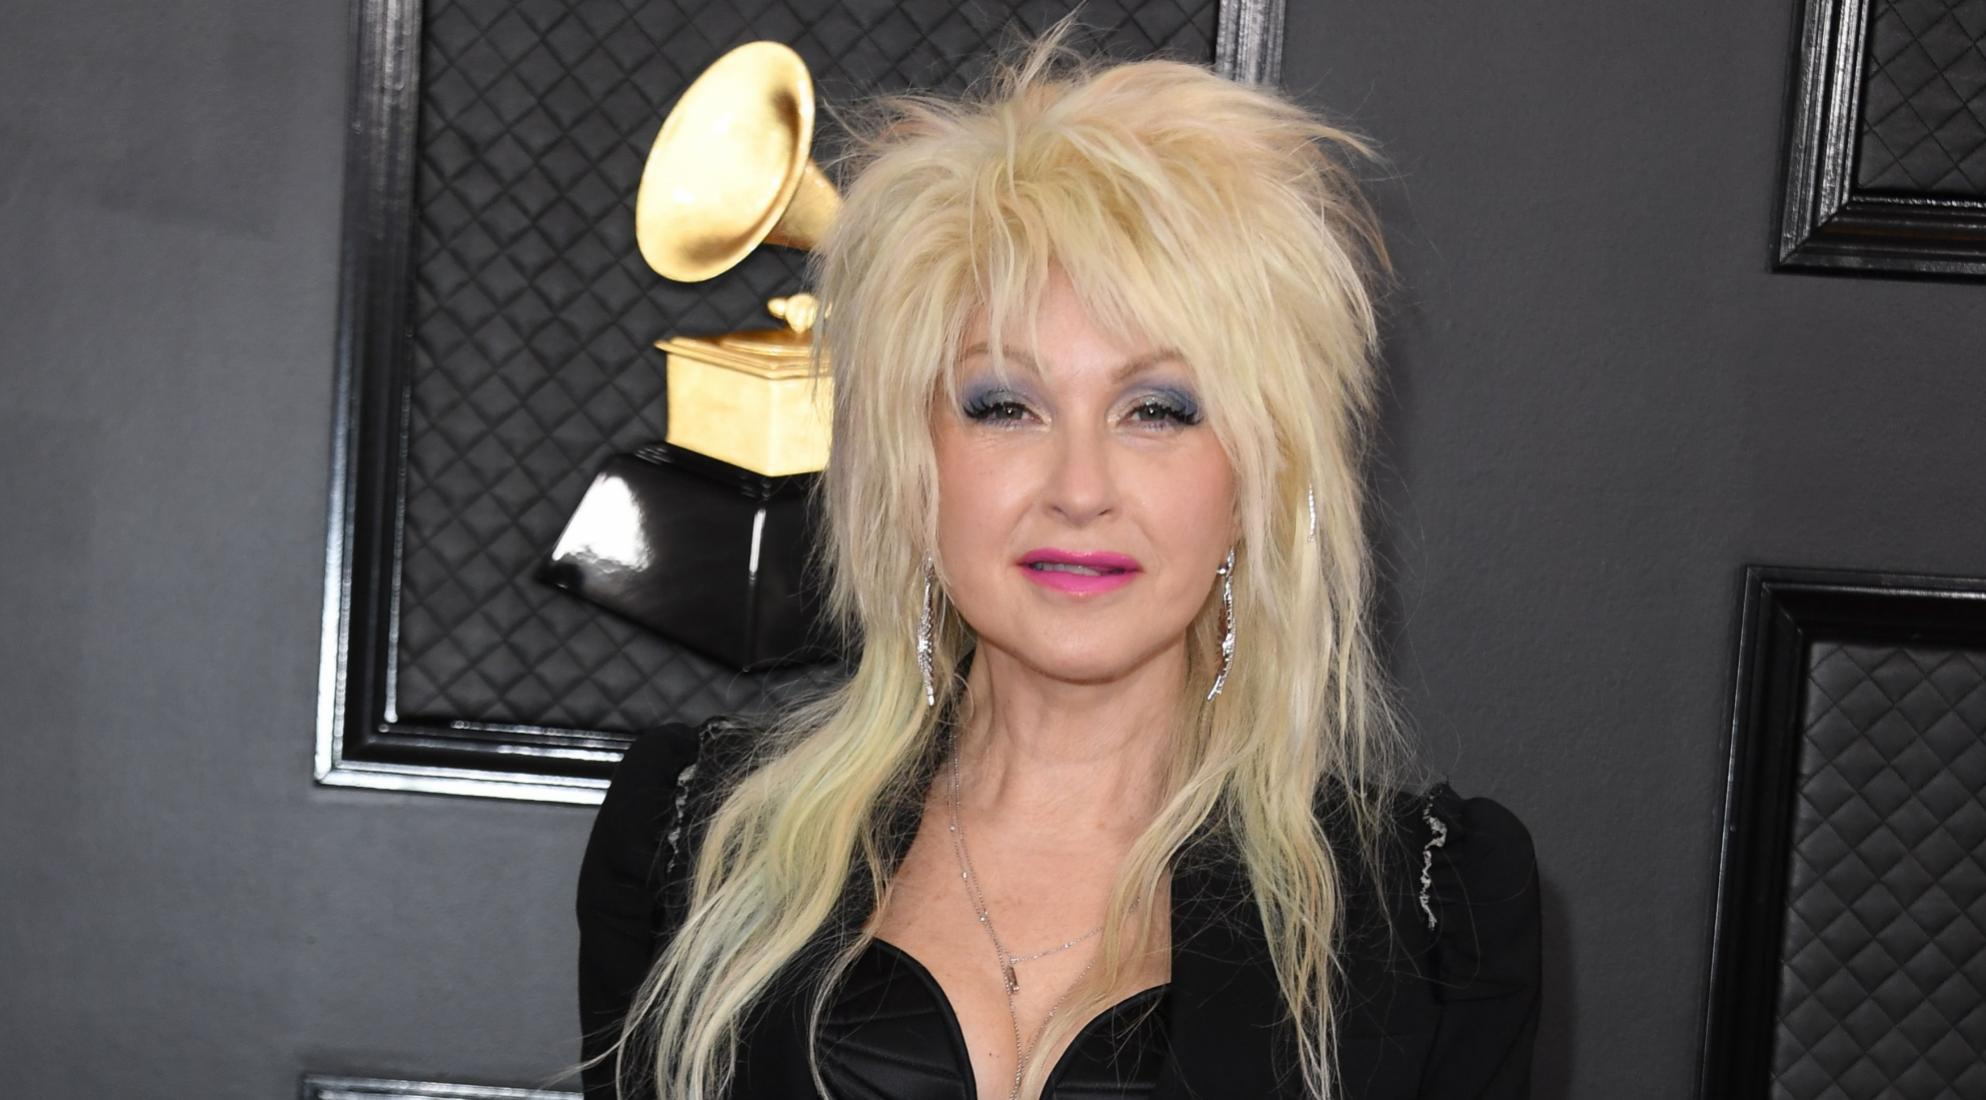 US singer Cyndi Lauper arrives for the 62nd Annual Grammy Awards on January 26, 2020, in Los Angeles